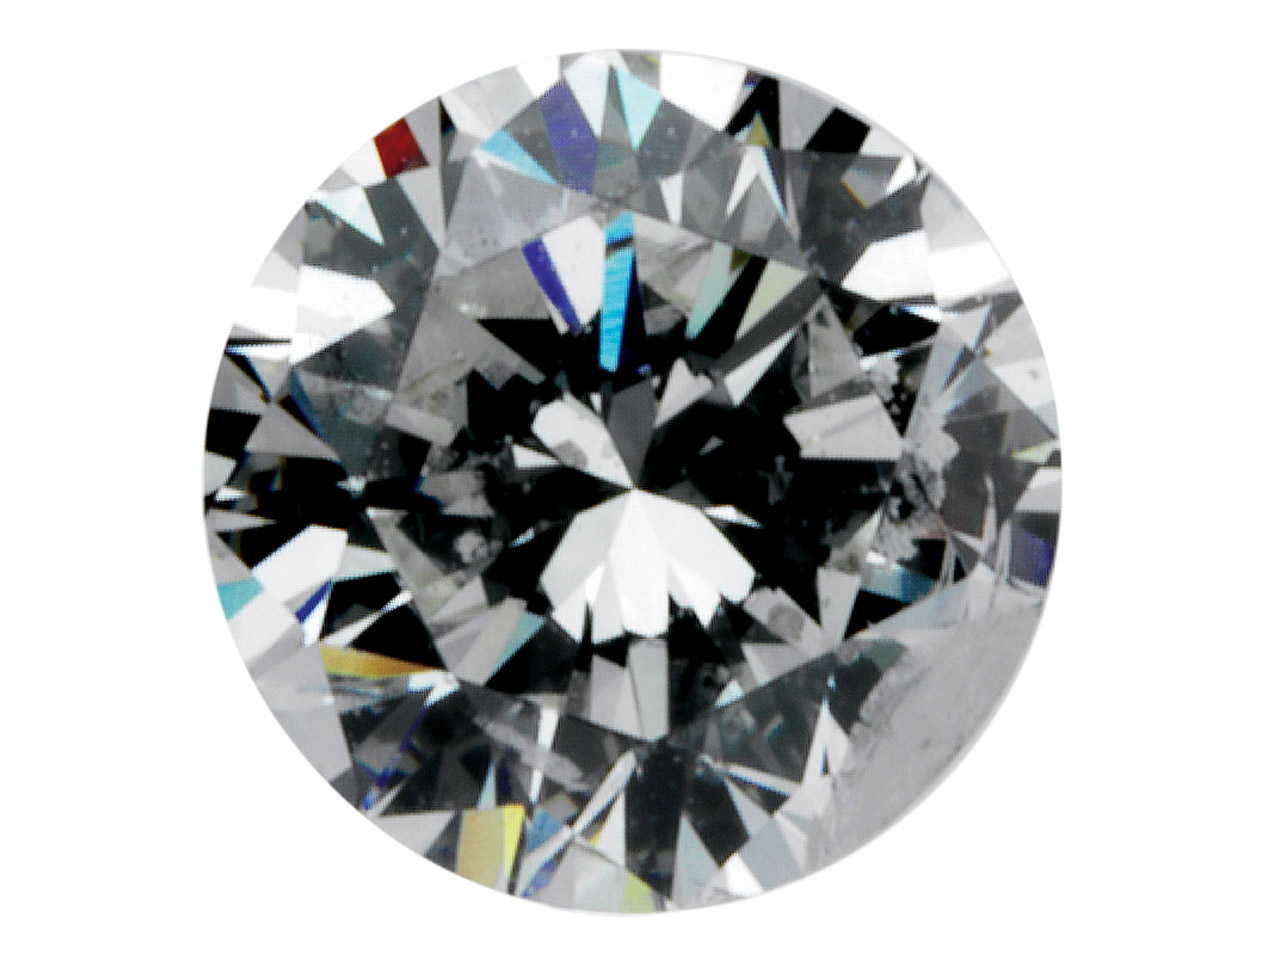 Diamond, Round, G/vs, 1.5pt/1.5mm